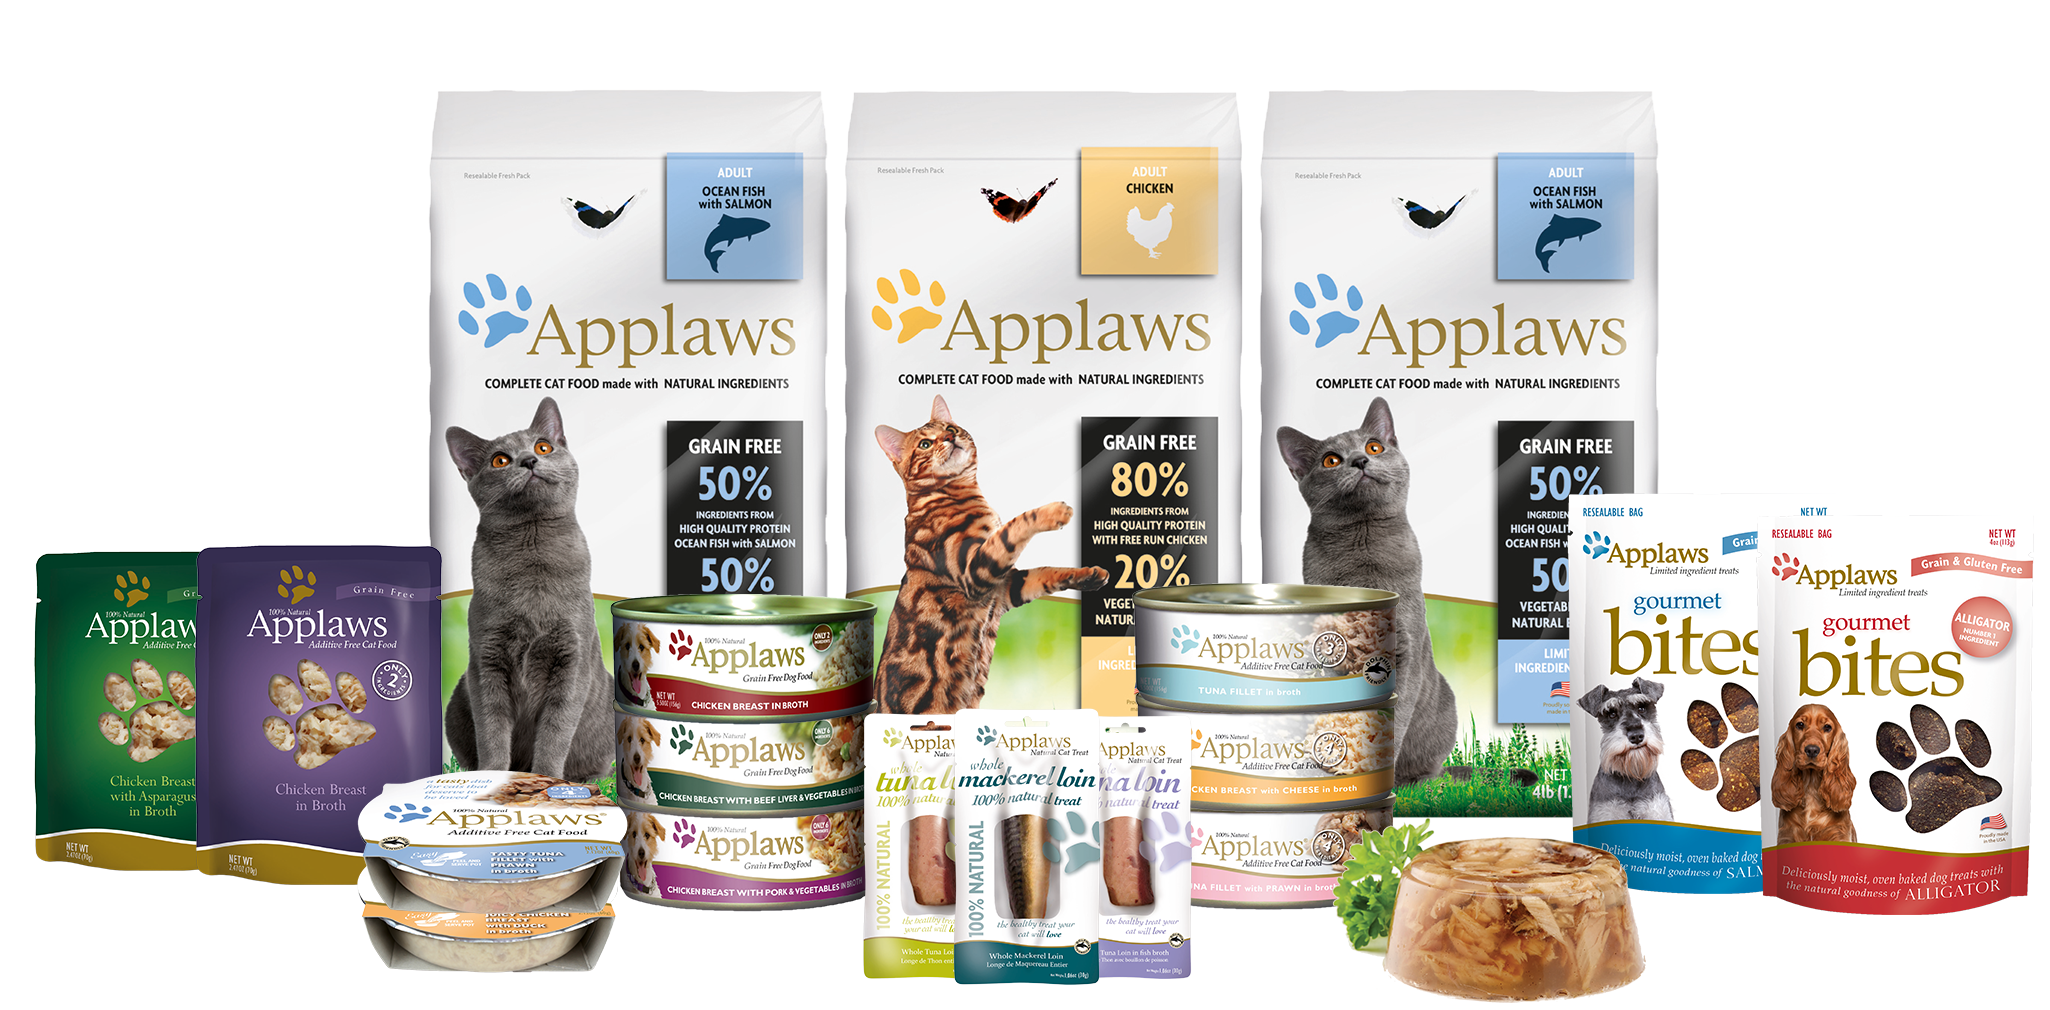 Applaws_Family_View_Products.png